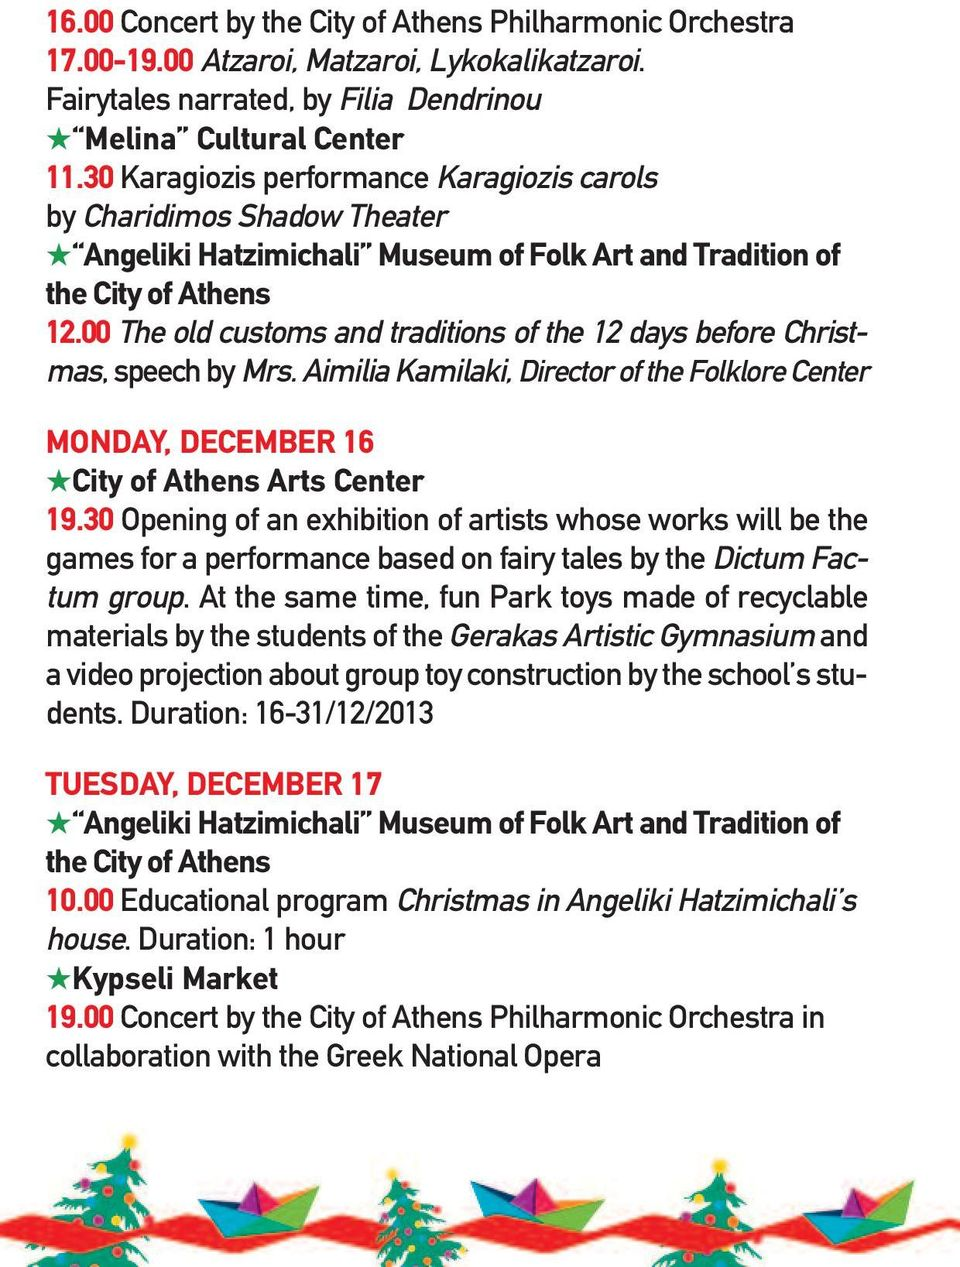 00 The old customs and traditions of the 12 days before Christmas, speech by Mrs. Aimilia Kamilaki, Director of the Folklore Center MoNdAY, december 16 City of Athens Arts Center 19.